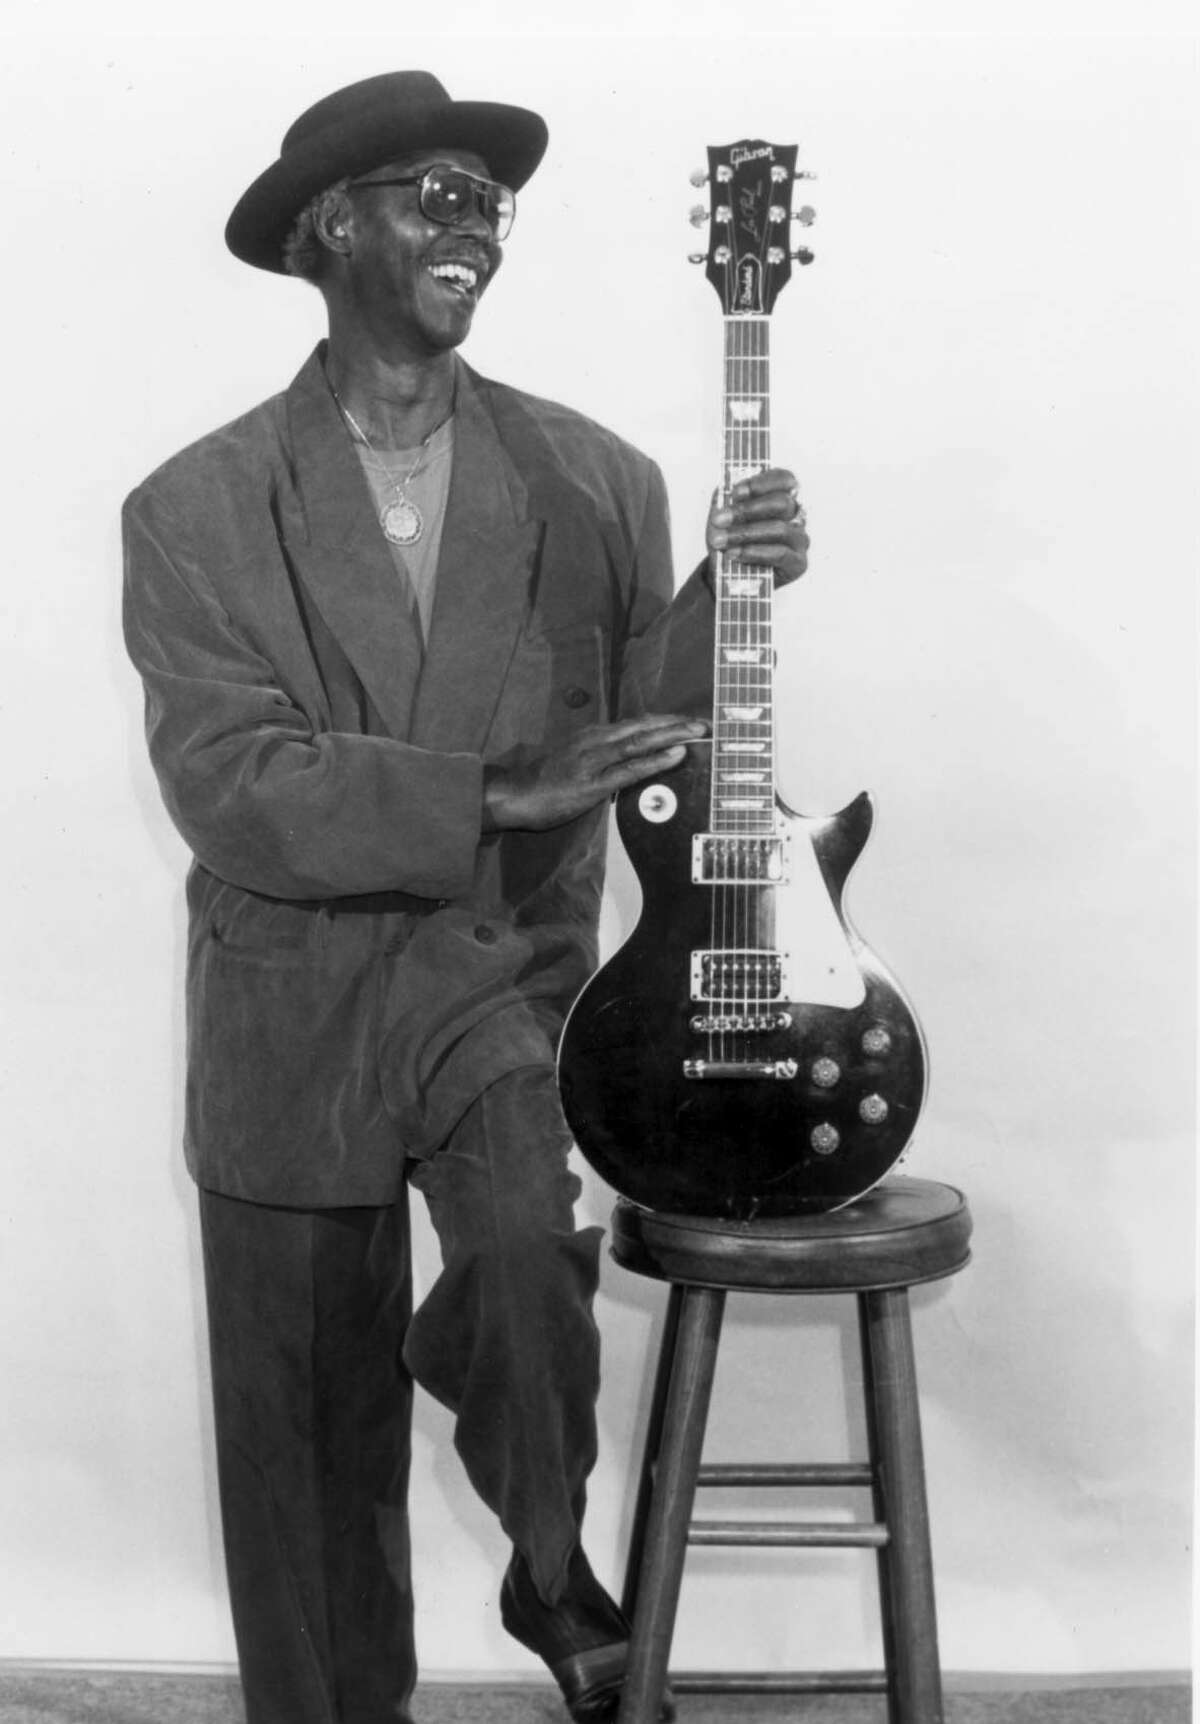 Texas Johnny Brown and the Quality Blues Band. HOUCHRON CAPTION (03/26/1998): Brown. HOUCHRON CAPTION (09/16/2001): Texas Johnny Brown will perform at the free Willie Mae